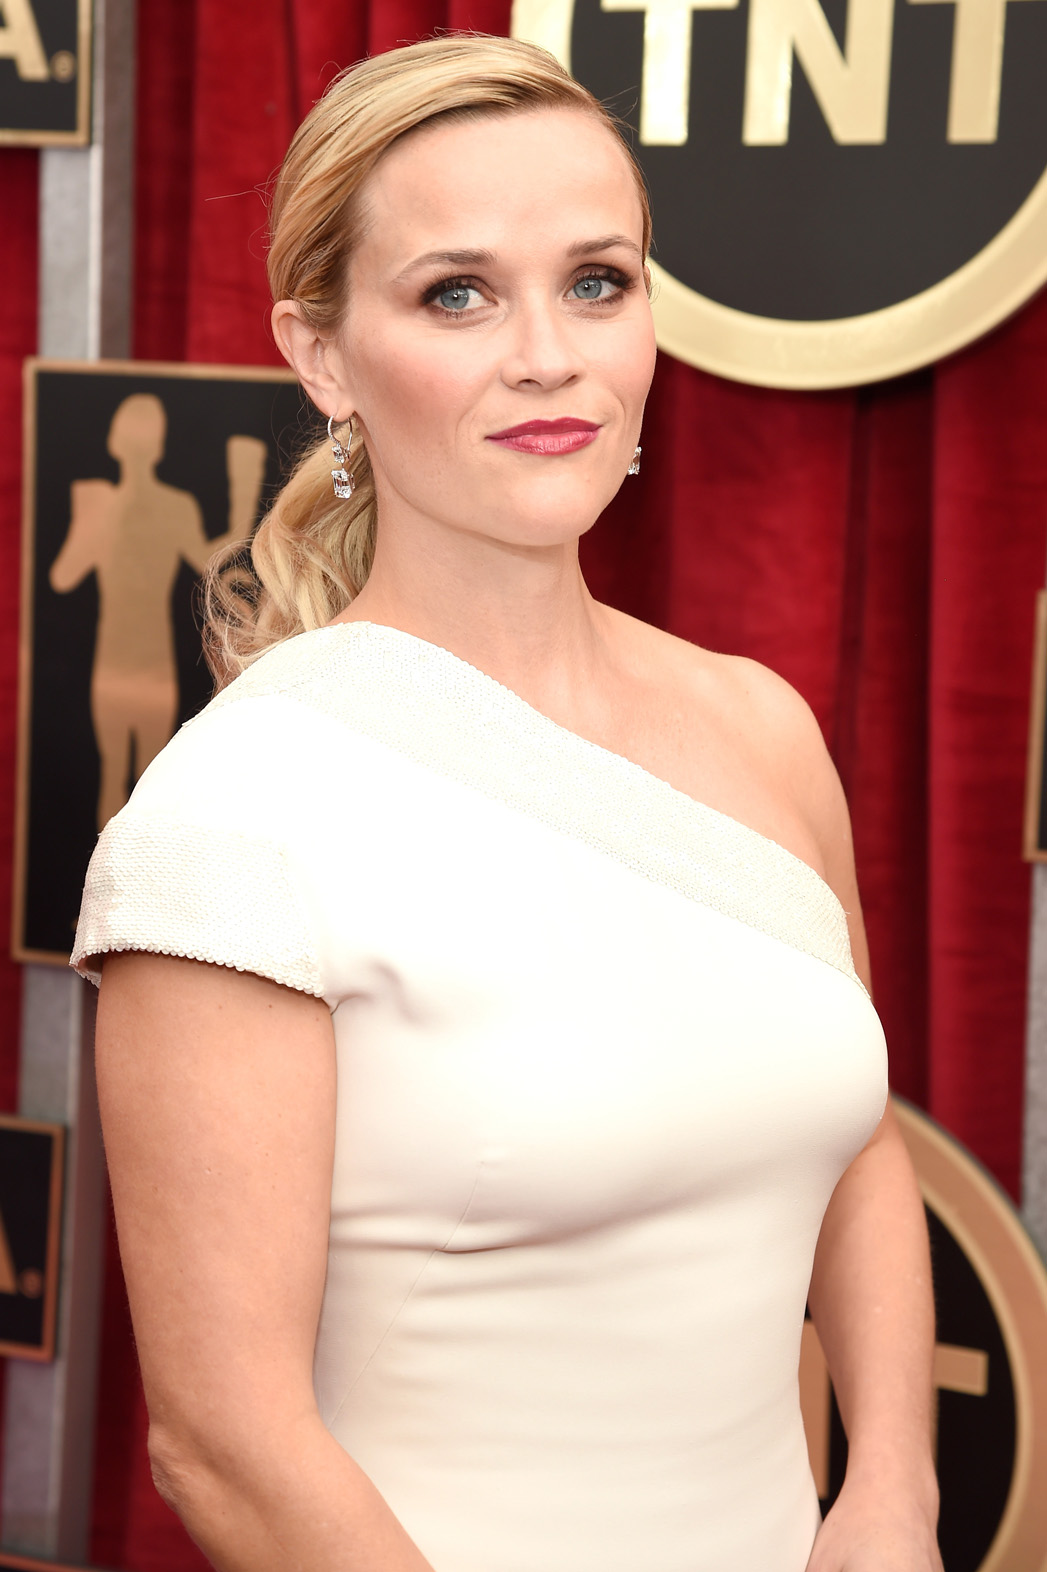 Reese Witherspoon Ponytail - P 2015